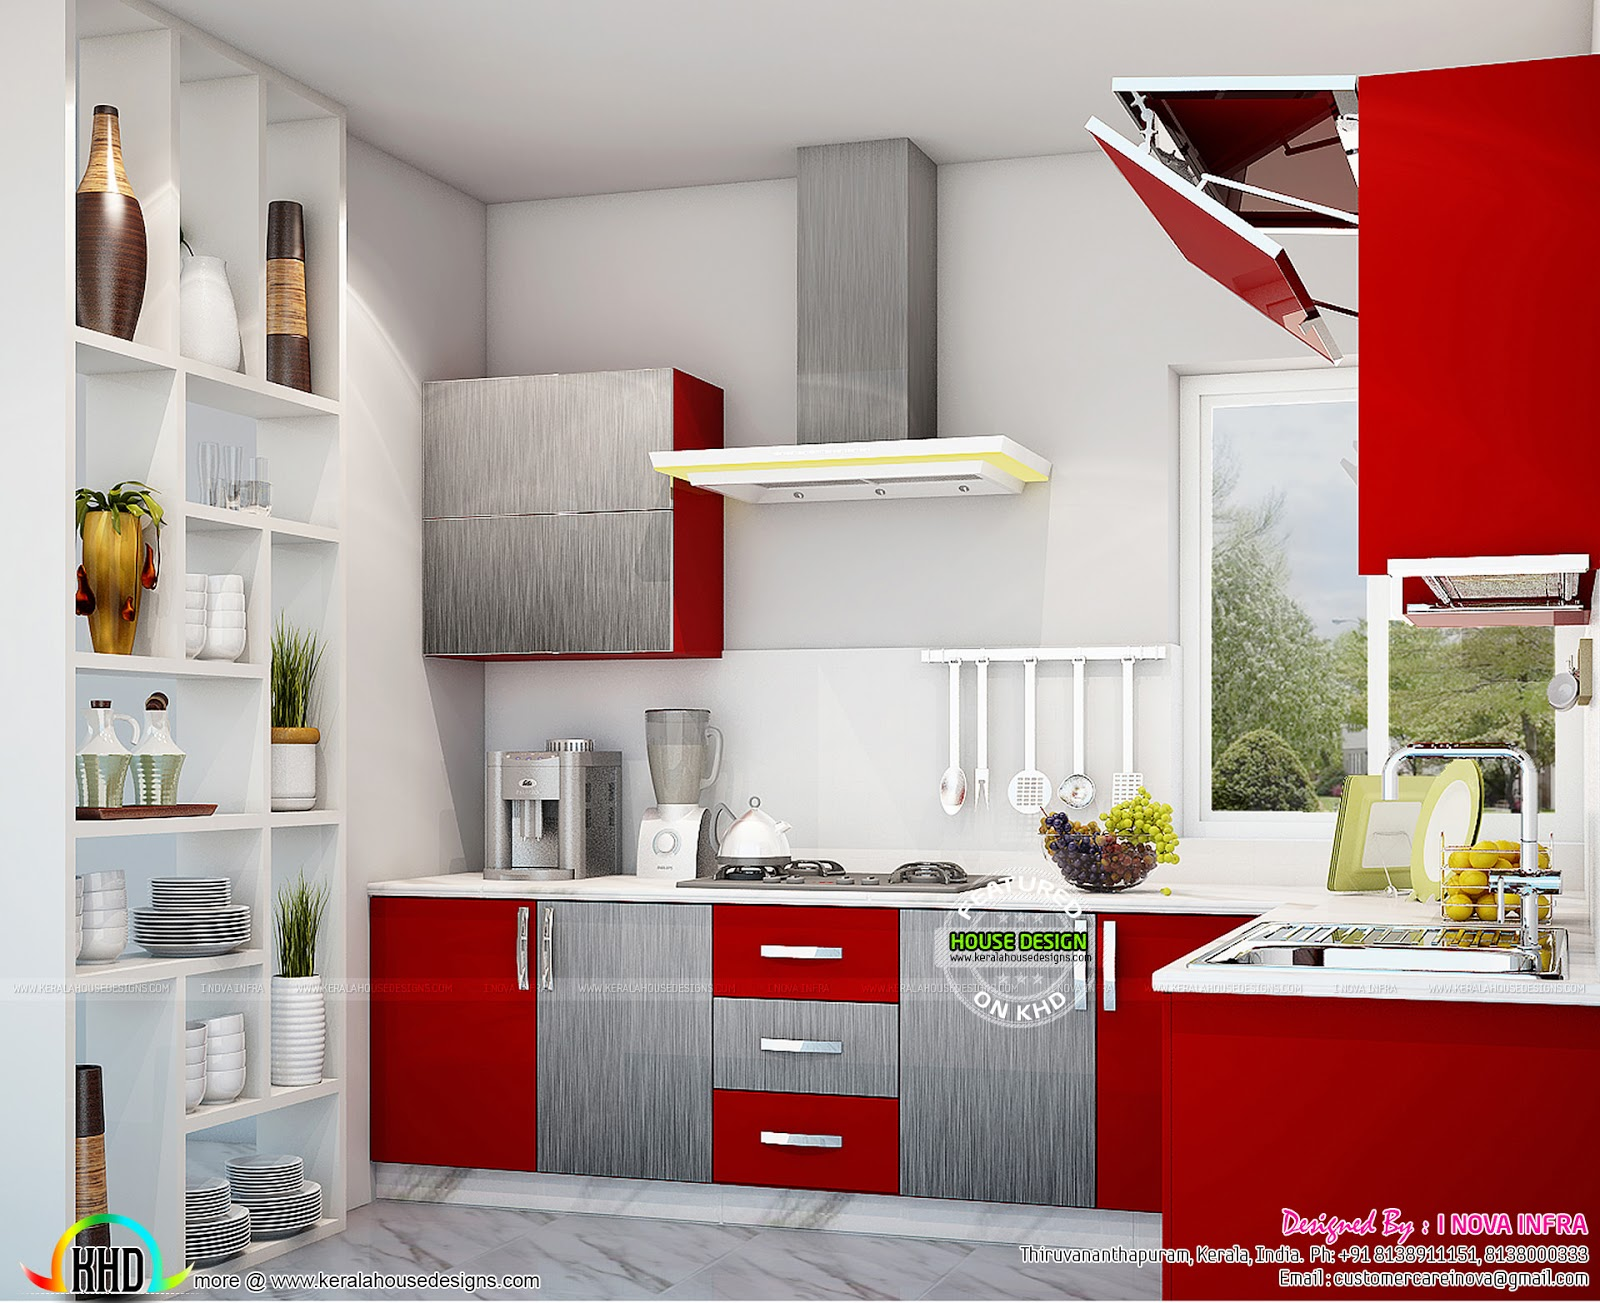 Kitchen interior works at trivandrum kerala home design for Kitchen interior designs